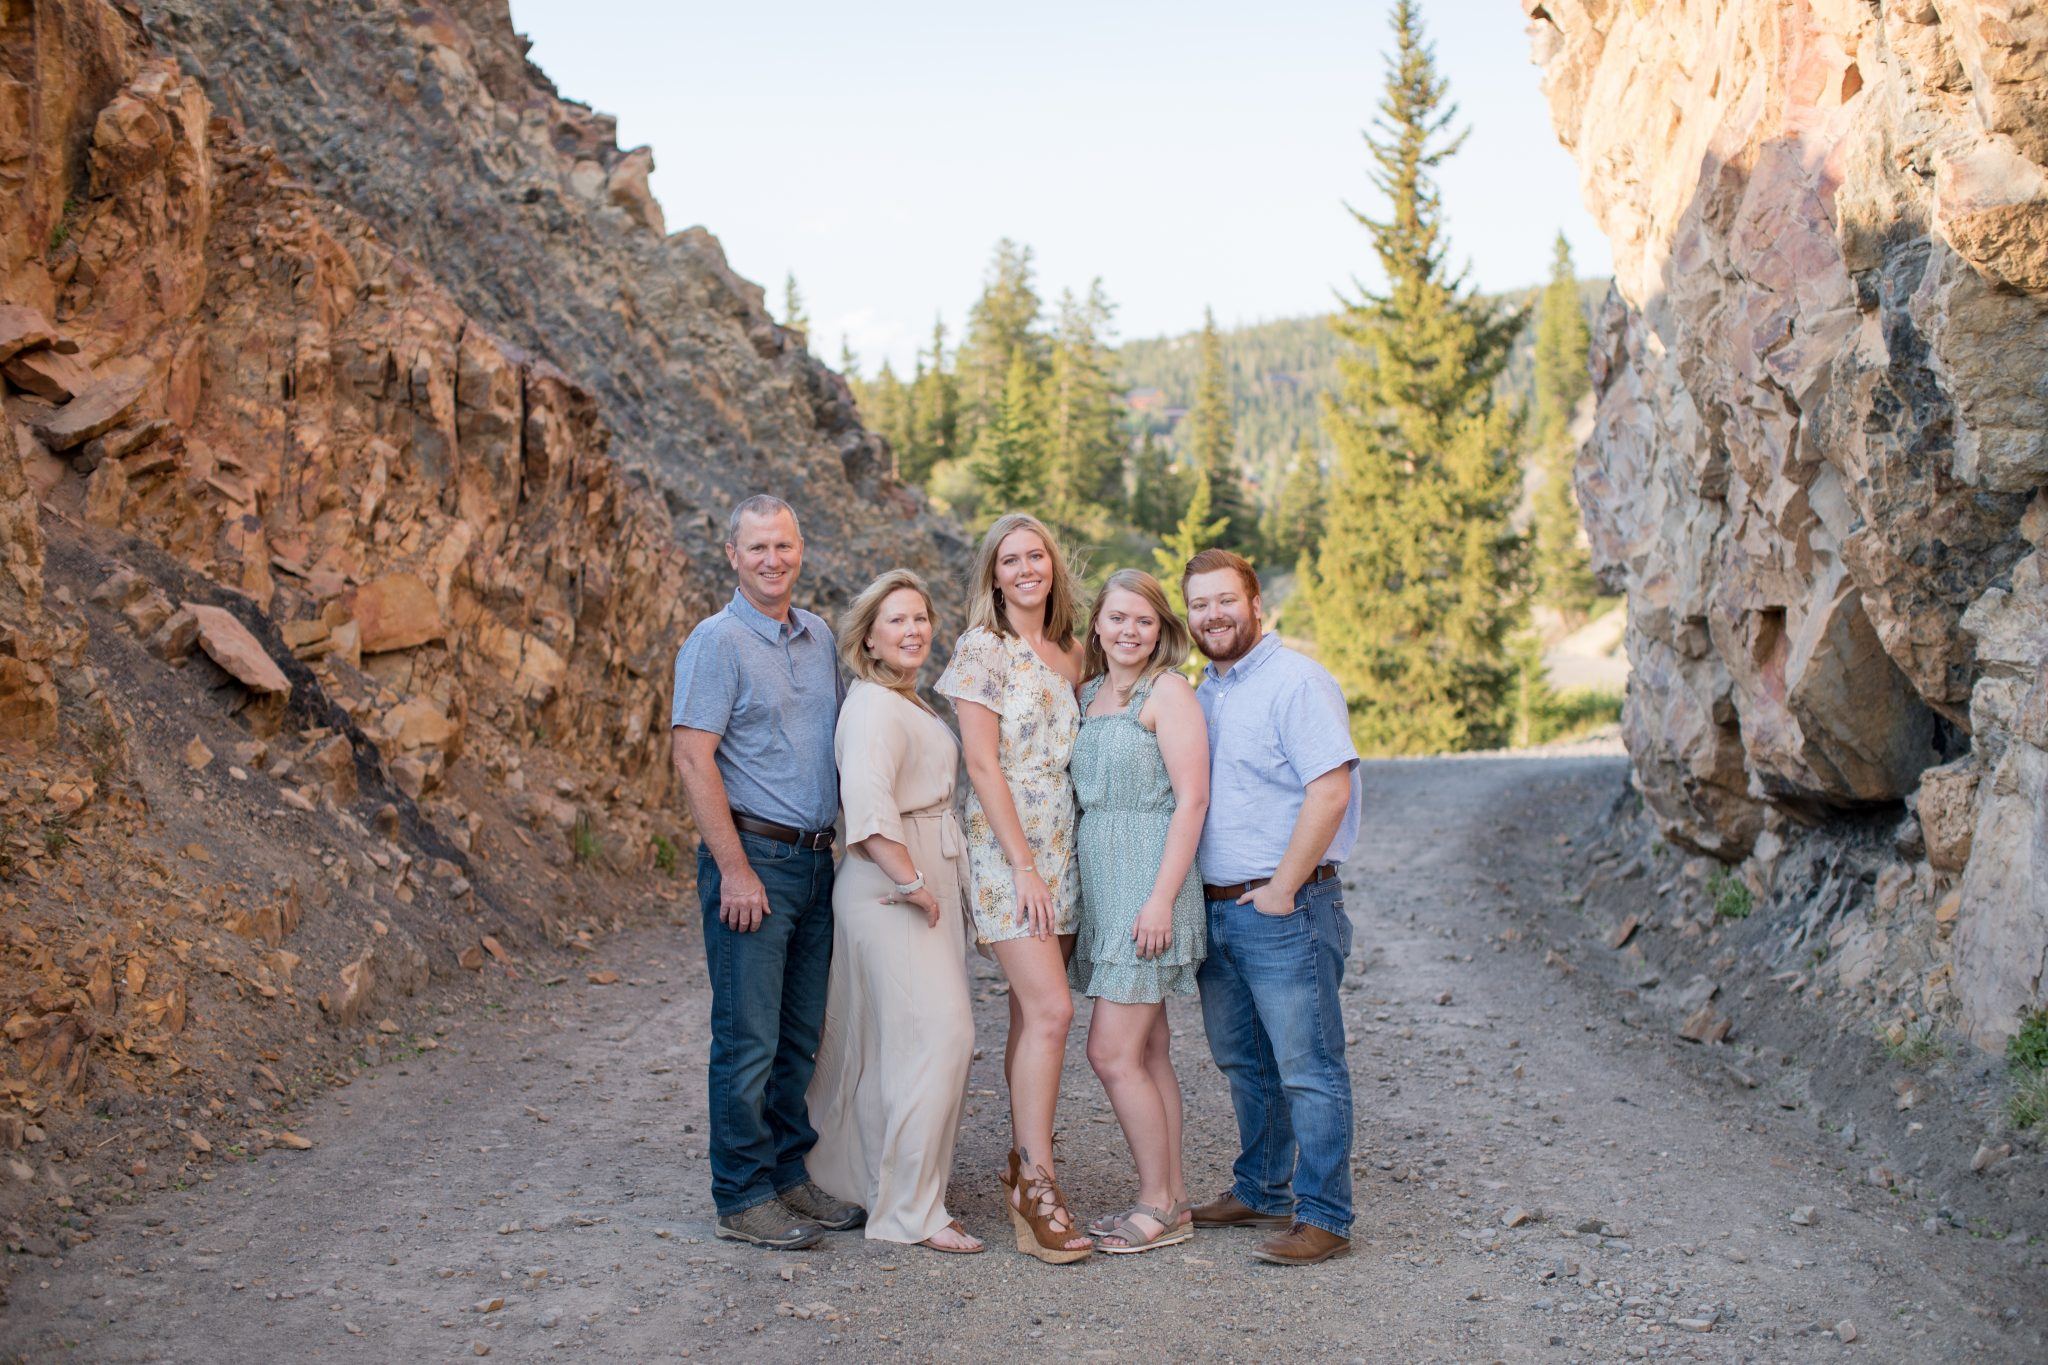 Family portrait photographer in Breckenridge Colorado